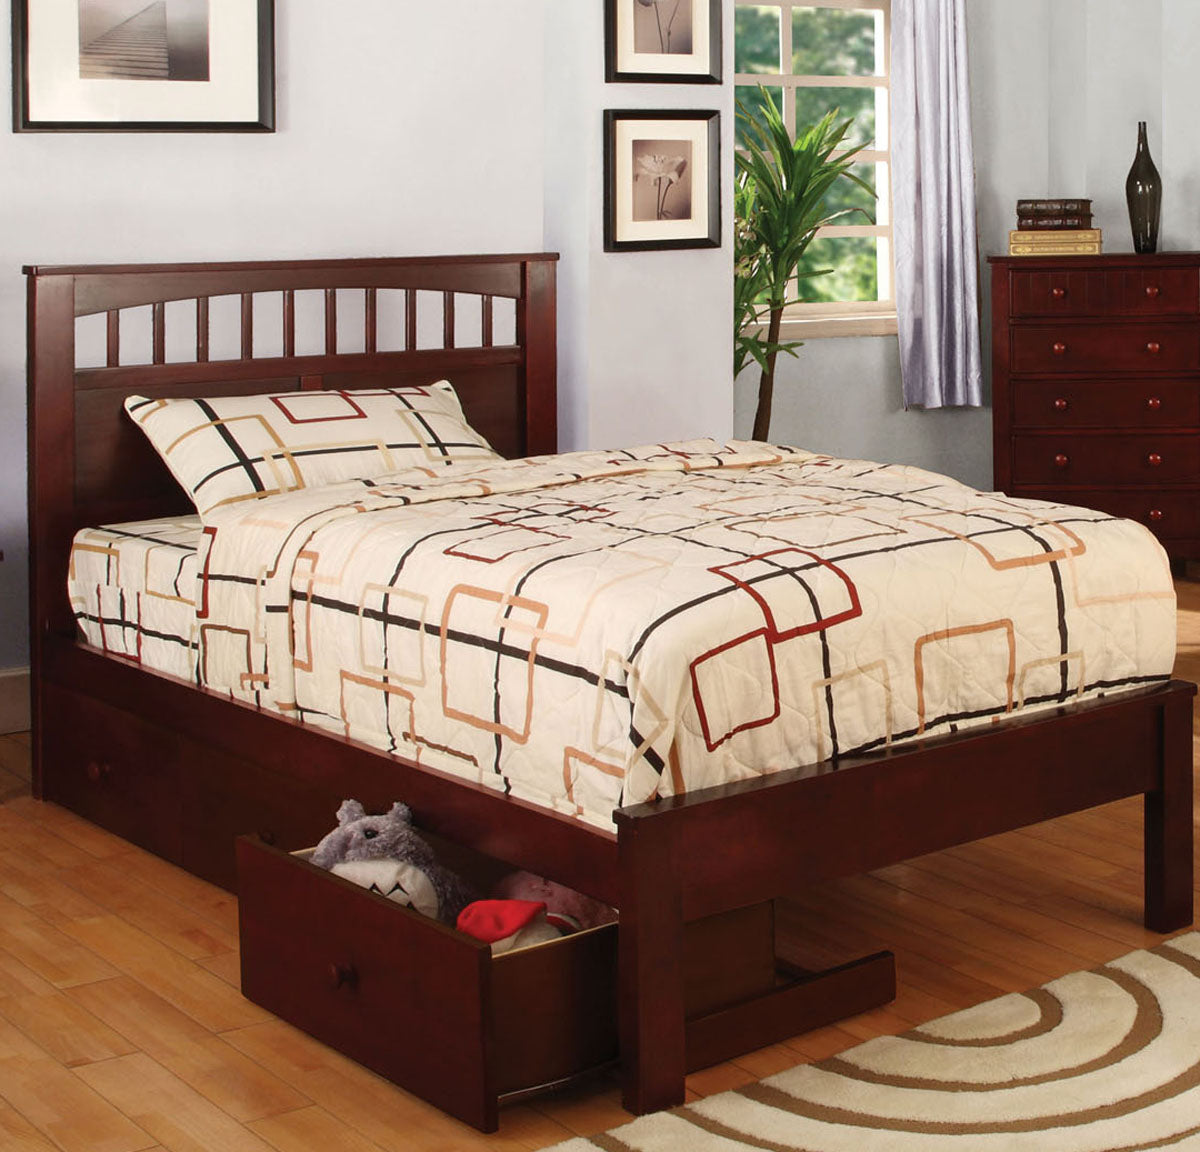 Carus CM7904CH-T CM-DR452-CH Cherry Twin Platform Bed with Drawers